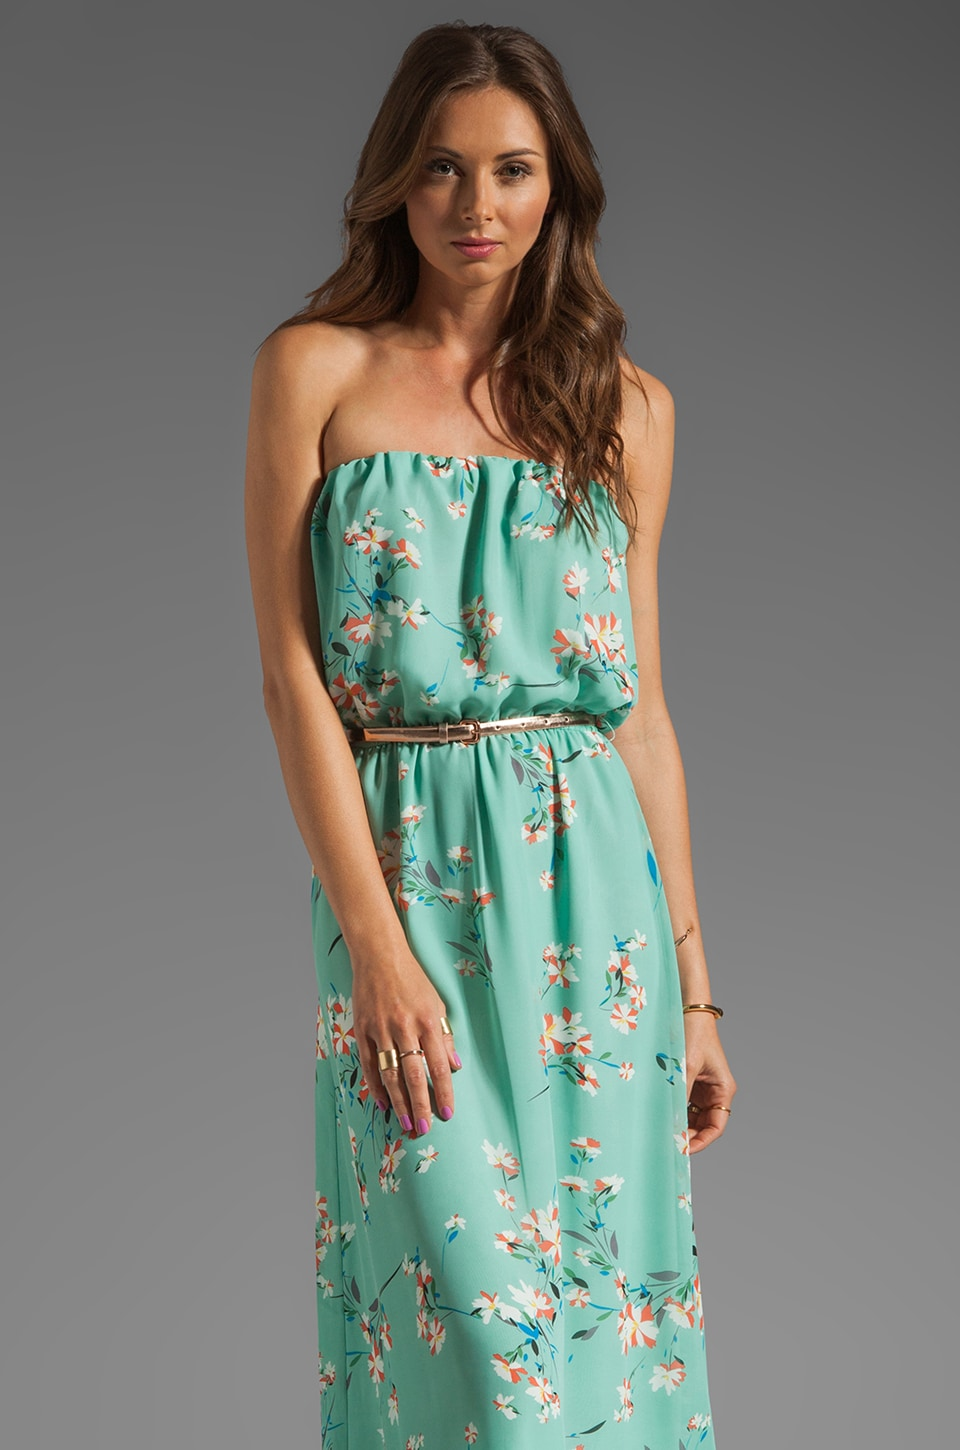 JARLO Layla Floral Maxi Dress in Mint